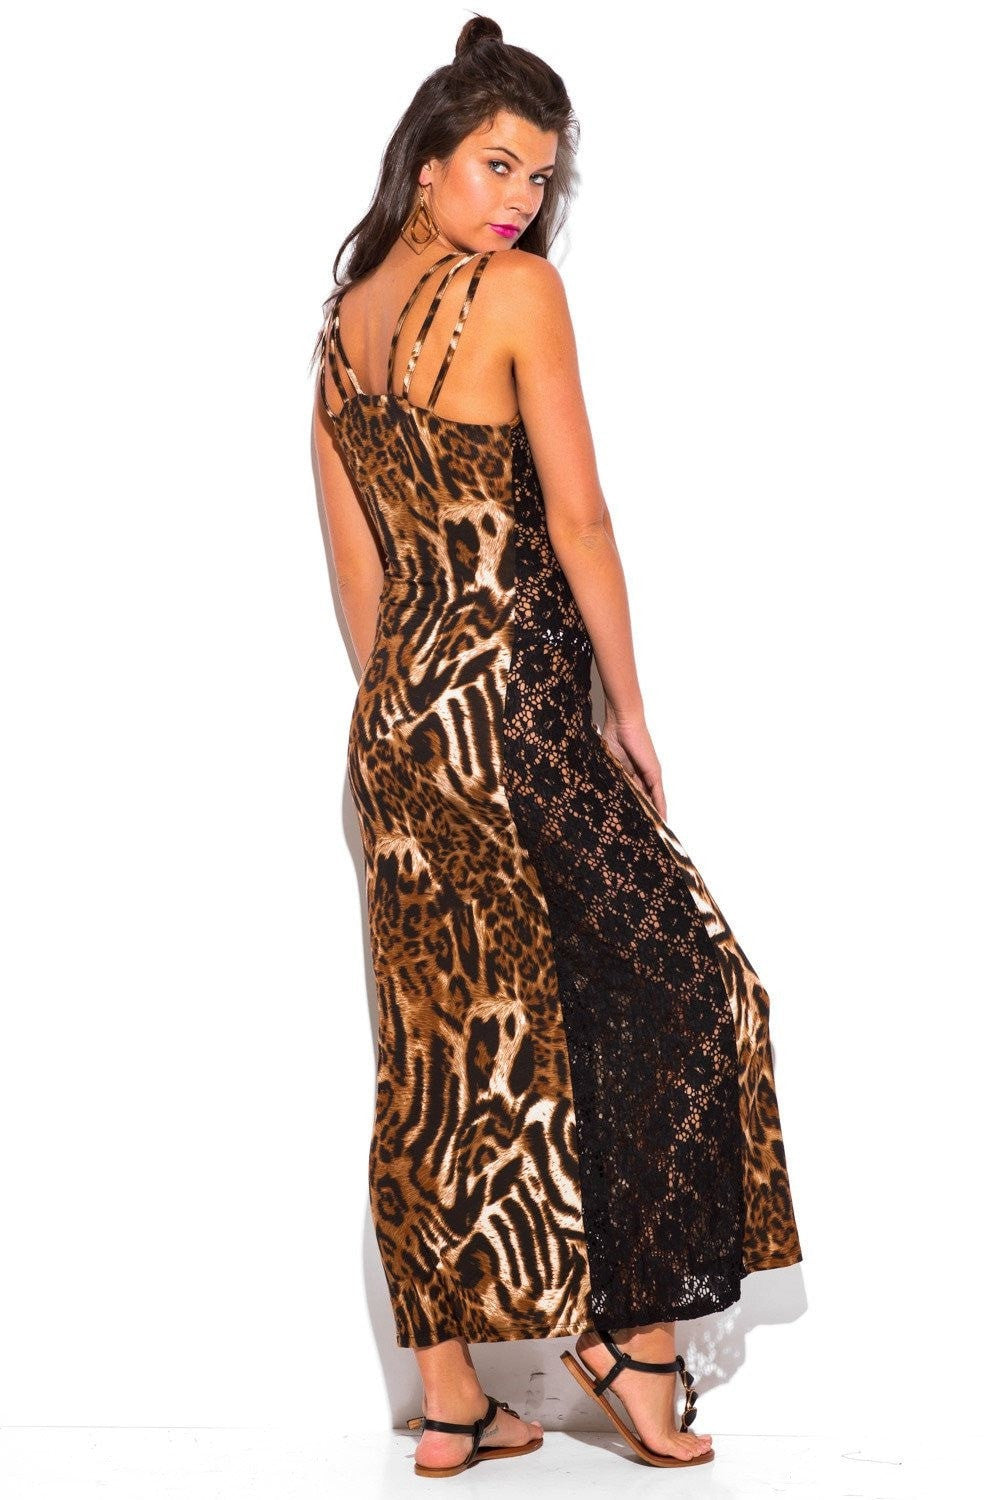 Stacie Animal Printed Lace Dress - Budget Babe Couture